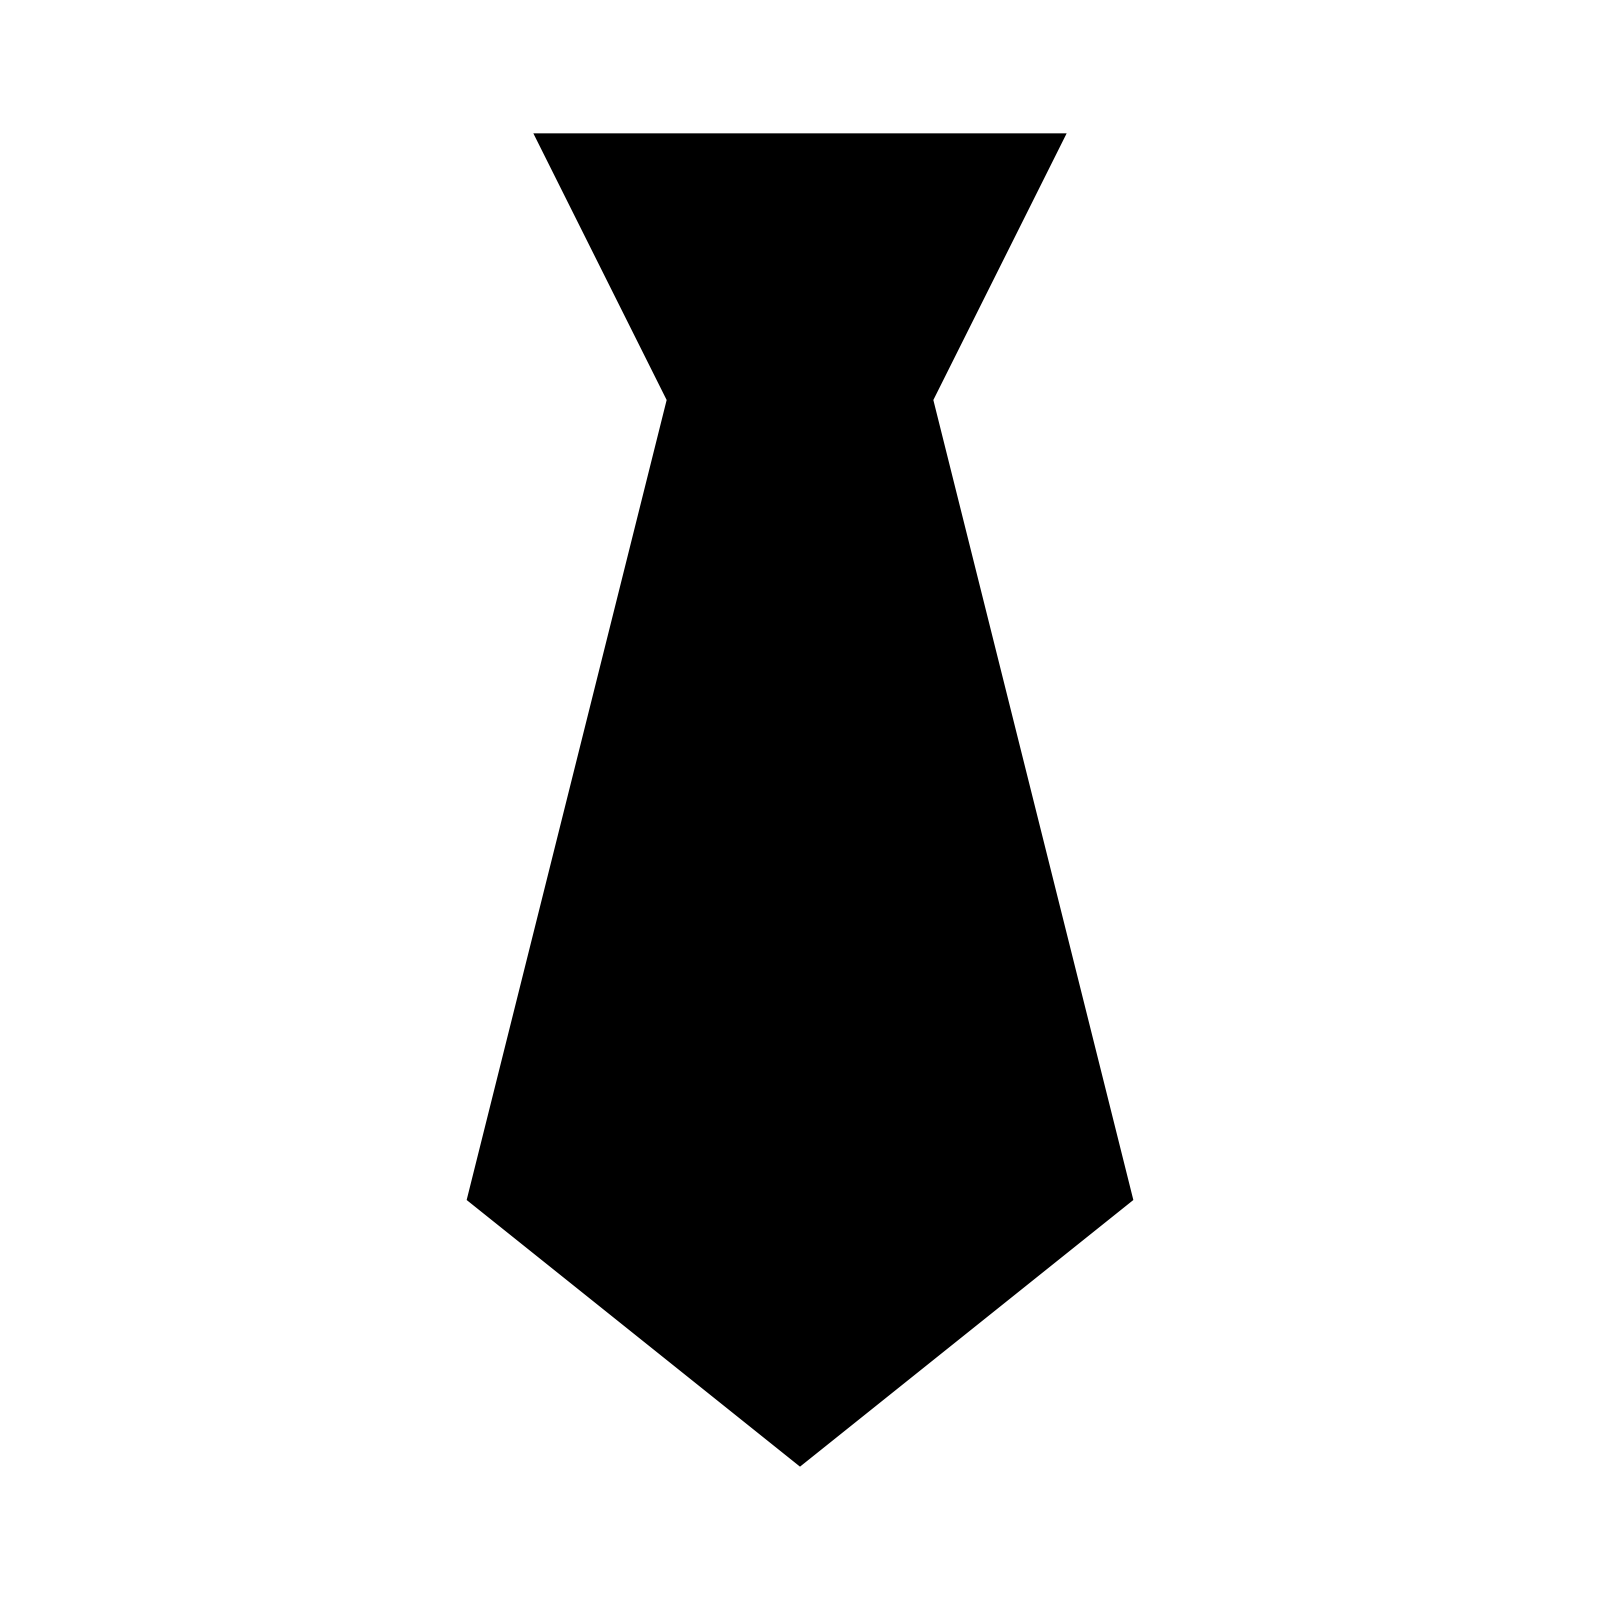 Flute clipart svg. Necktie silhouette at getdrawings